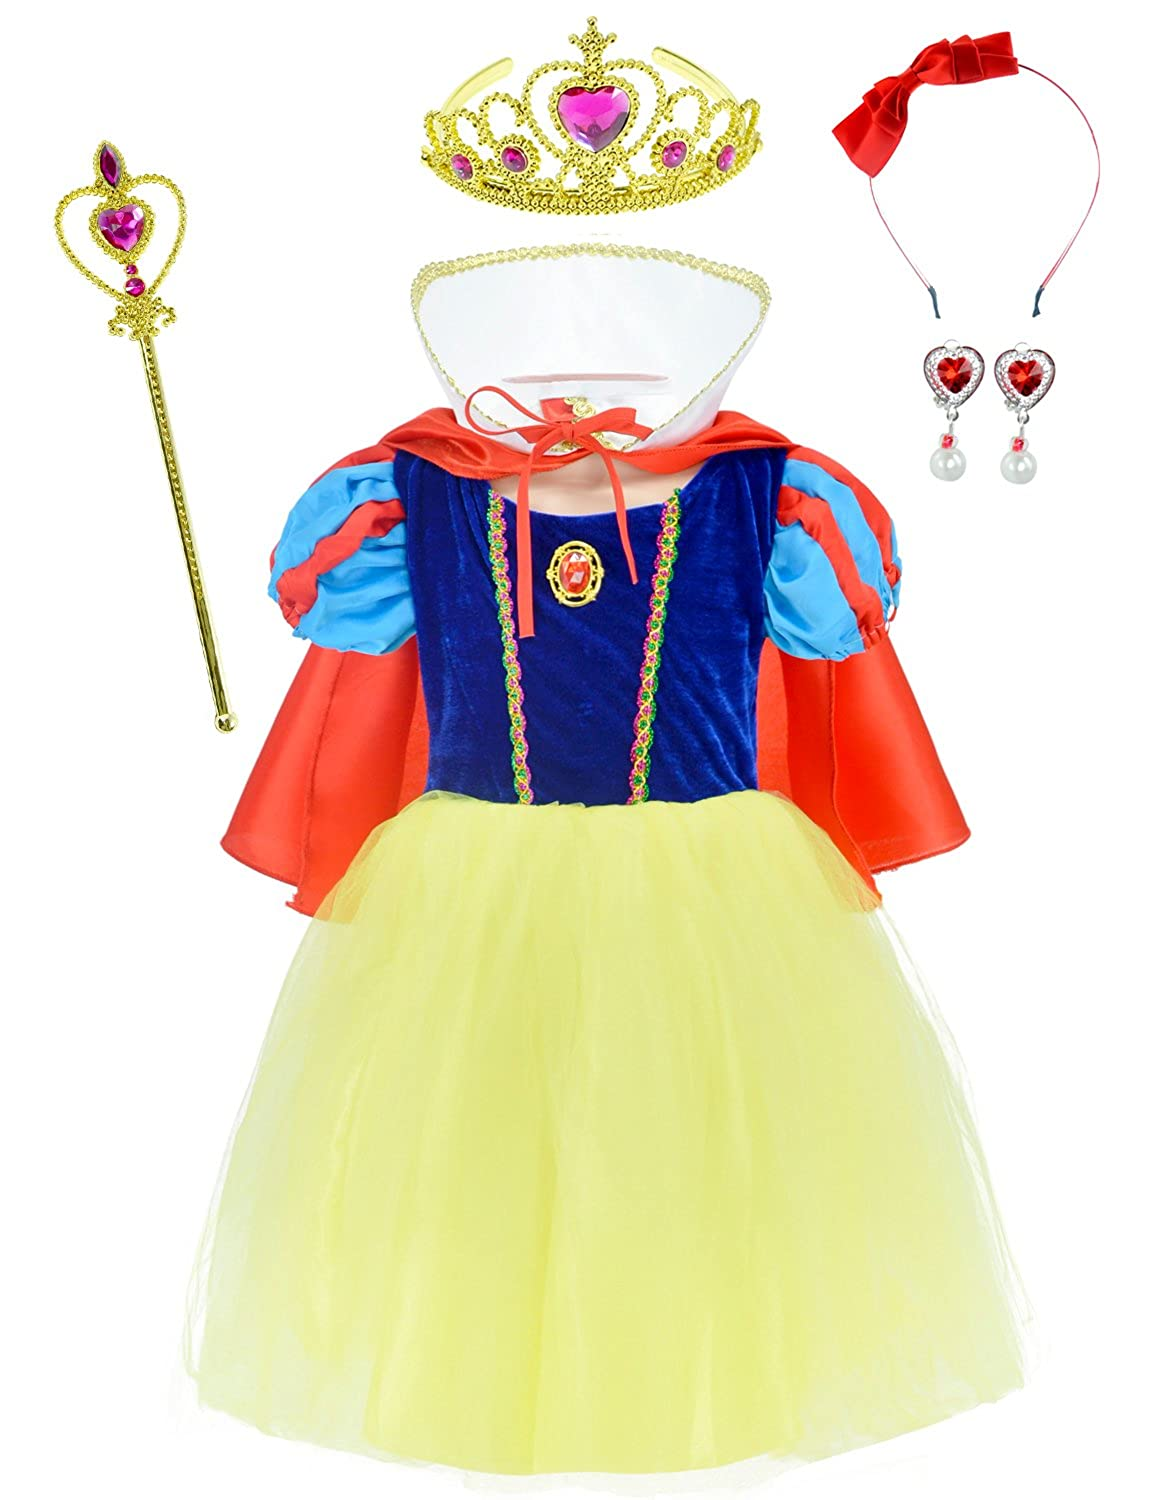 0c0594327a9bb Party Chili Princess Snow White Costume for Girls Dress Up with Accessories  2-12 Years